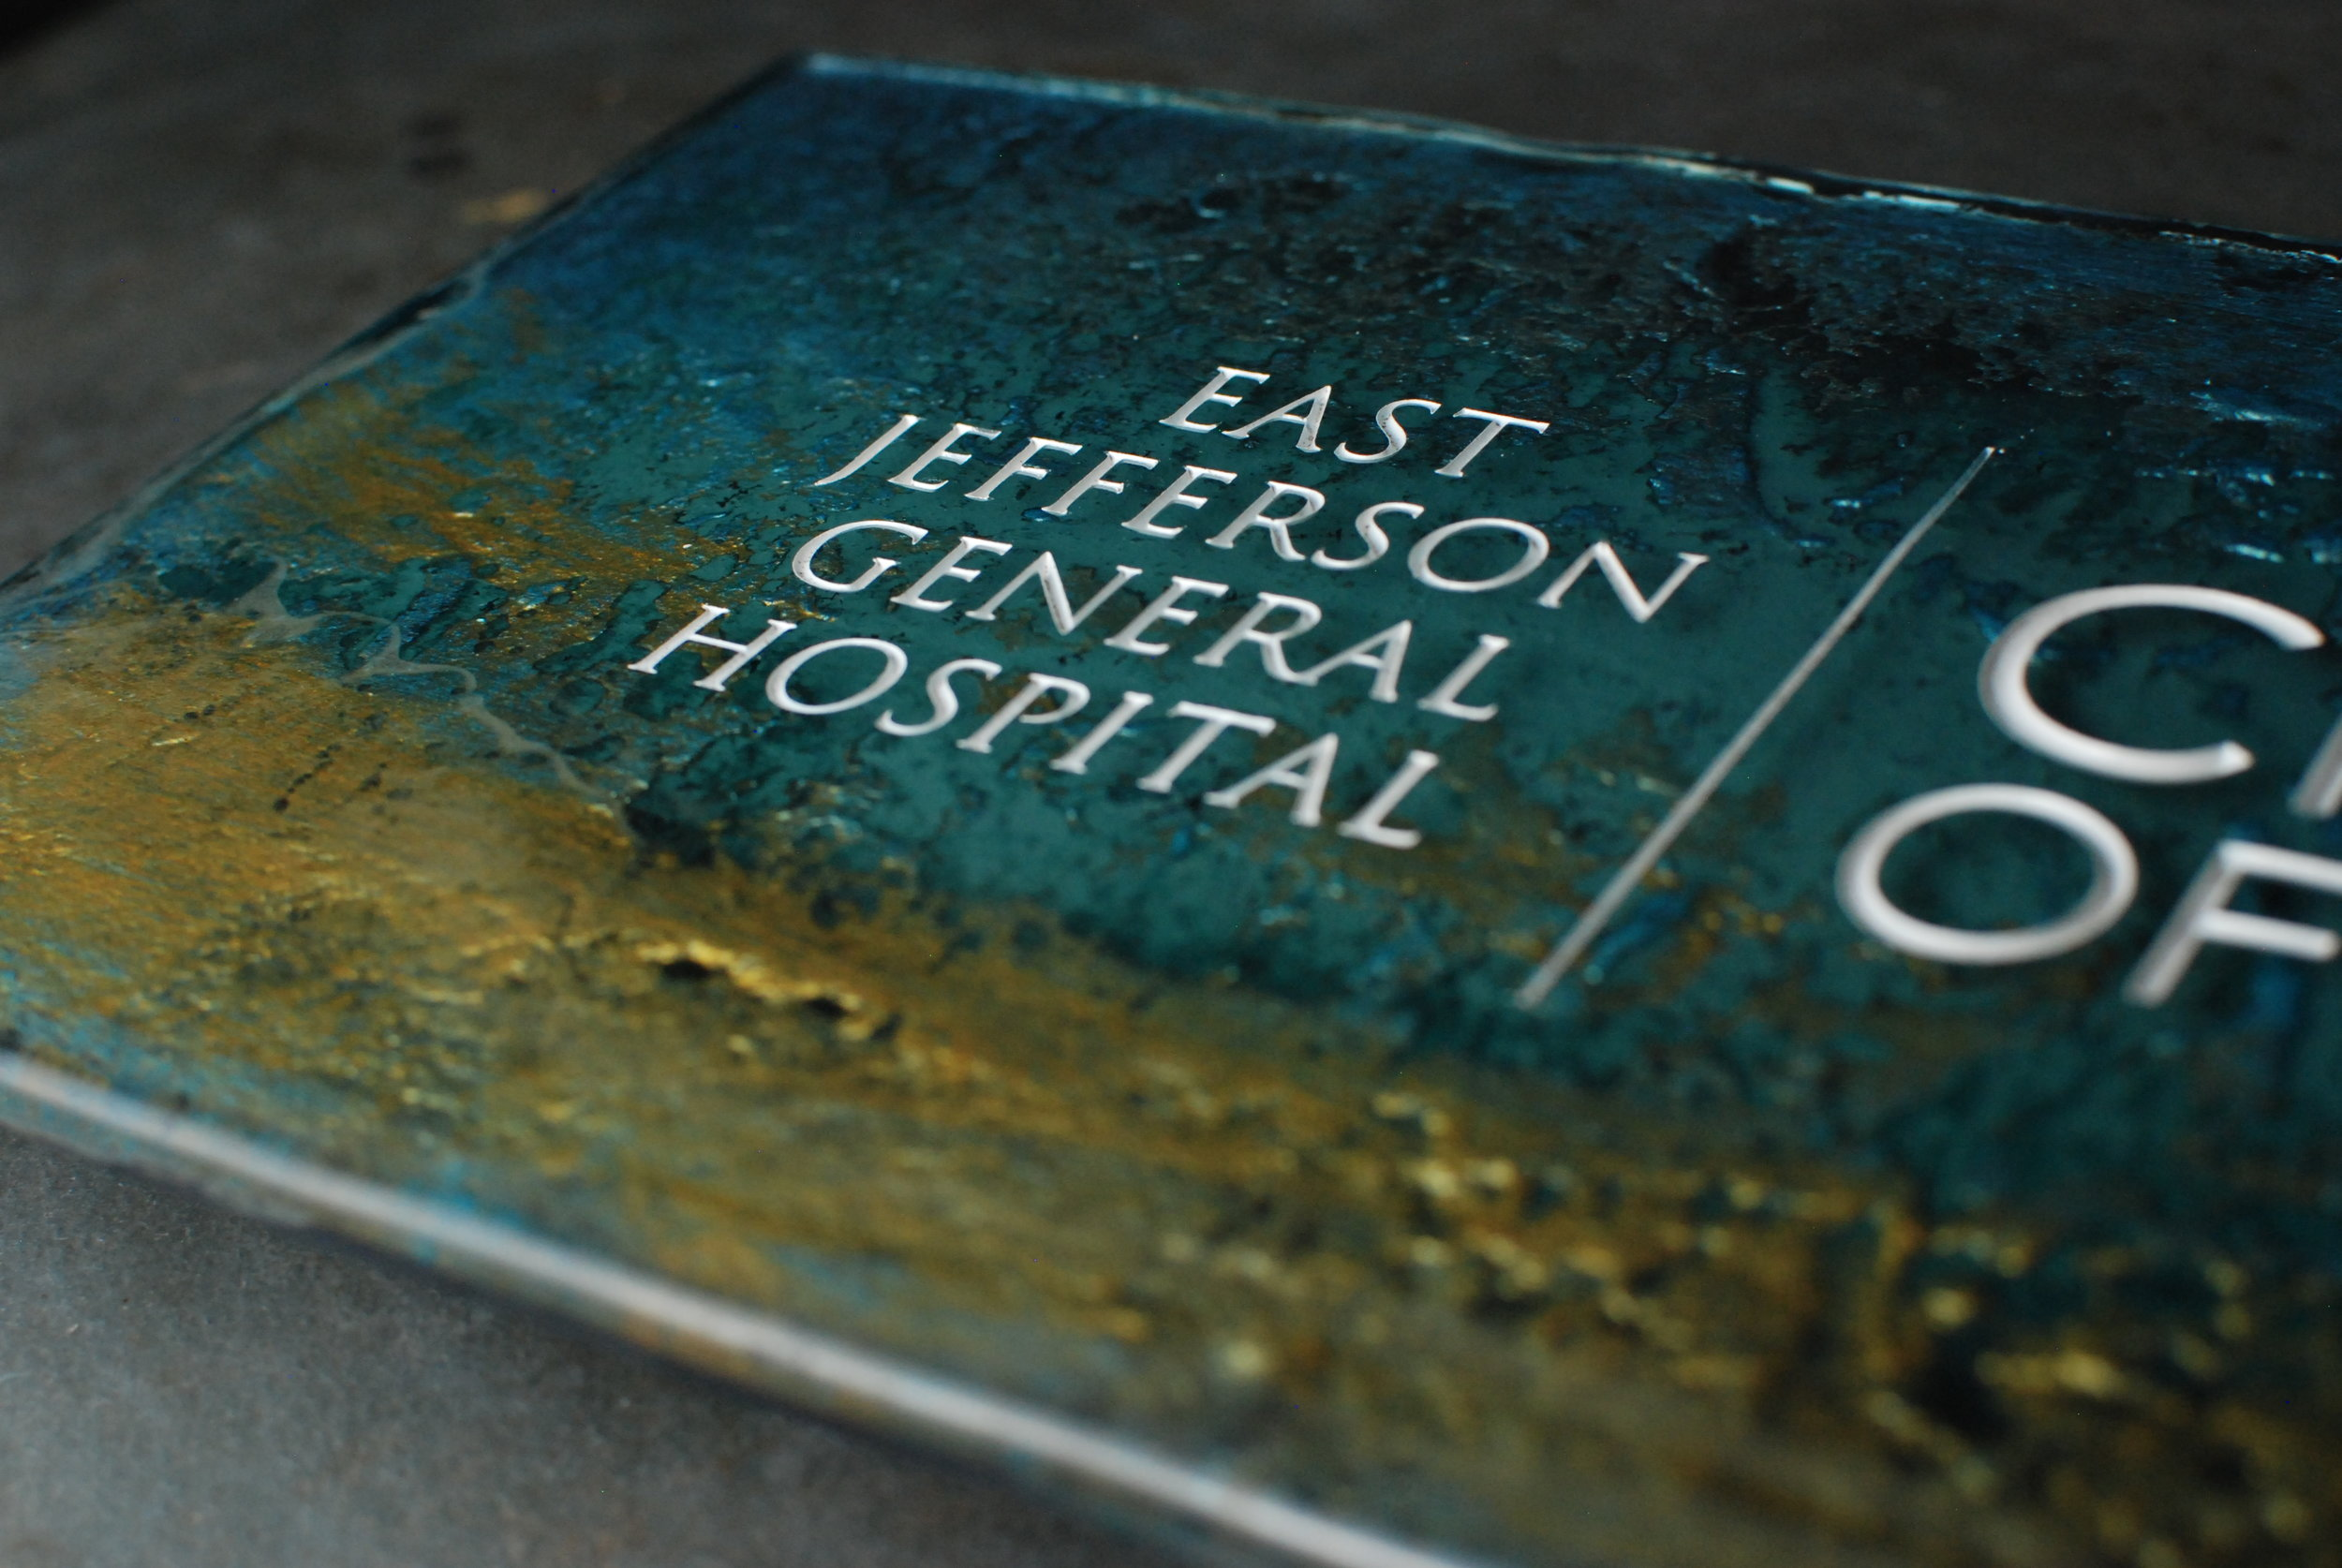 East Jefferson General Hospital Donor Recognition Plaque